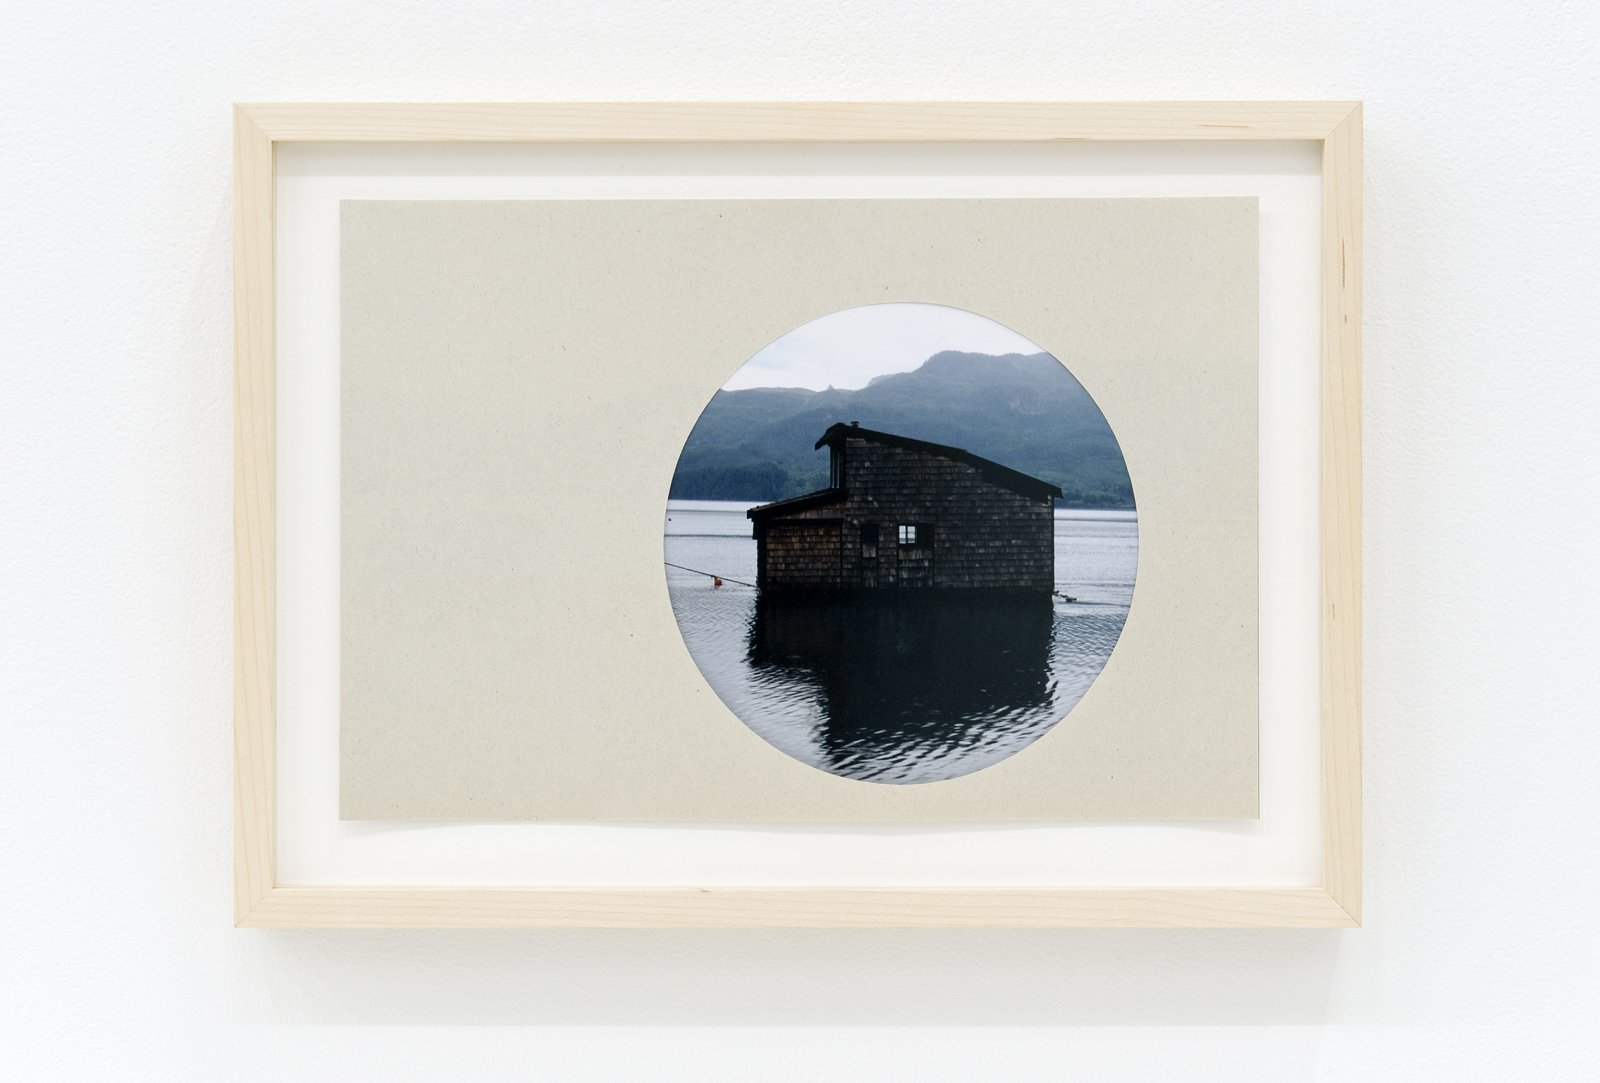 ​Arabella Campbell, The window framed by a wall, 2011, lightjet print, newsprint. 11 x 15 in. (27 x 37 cm) by